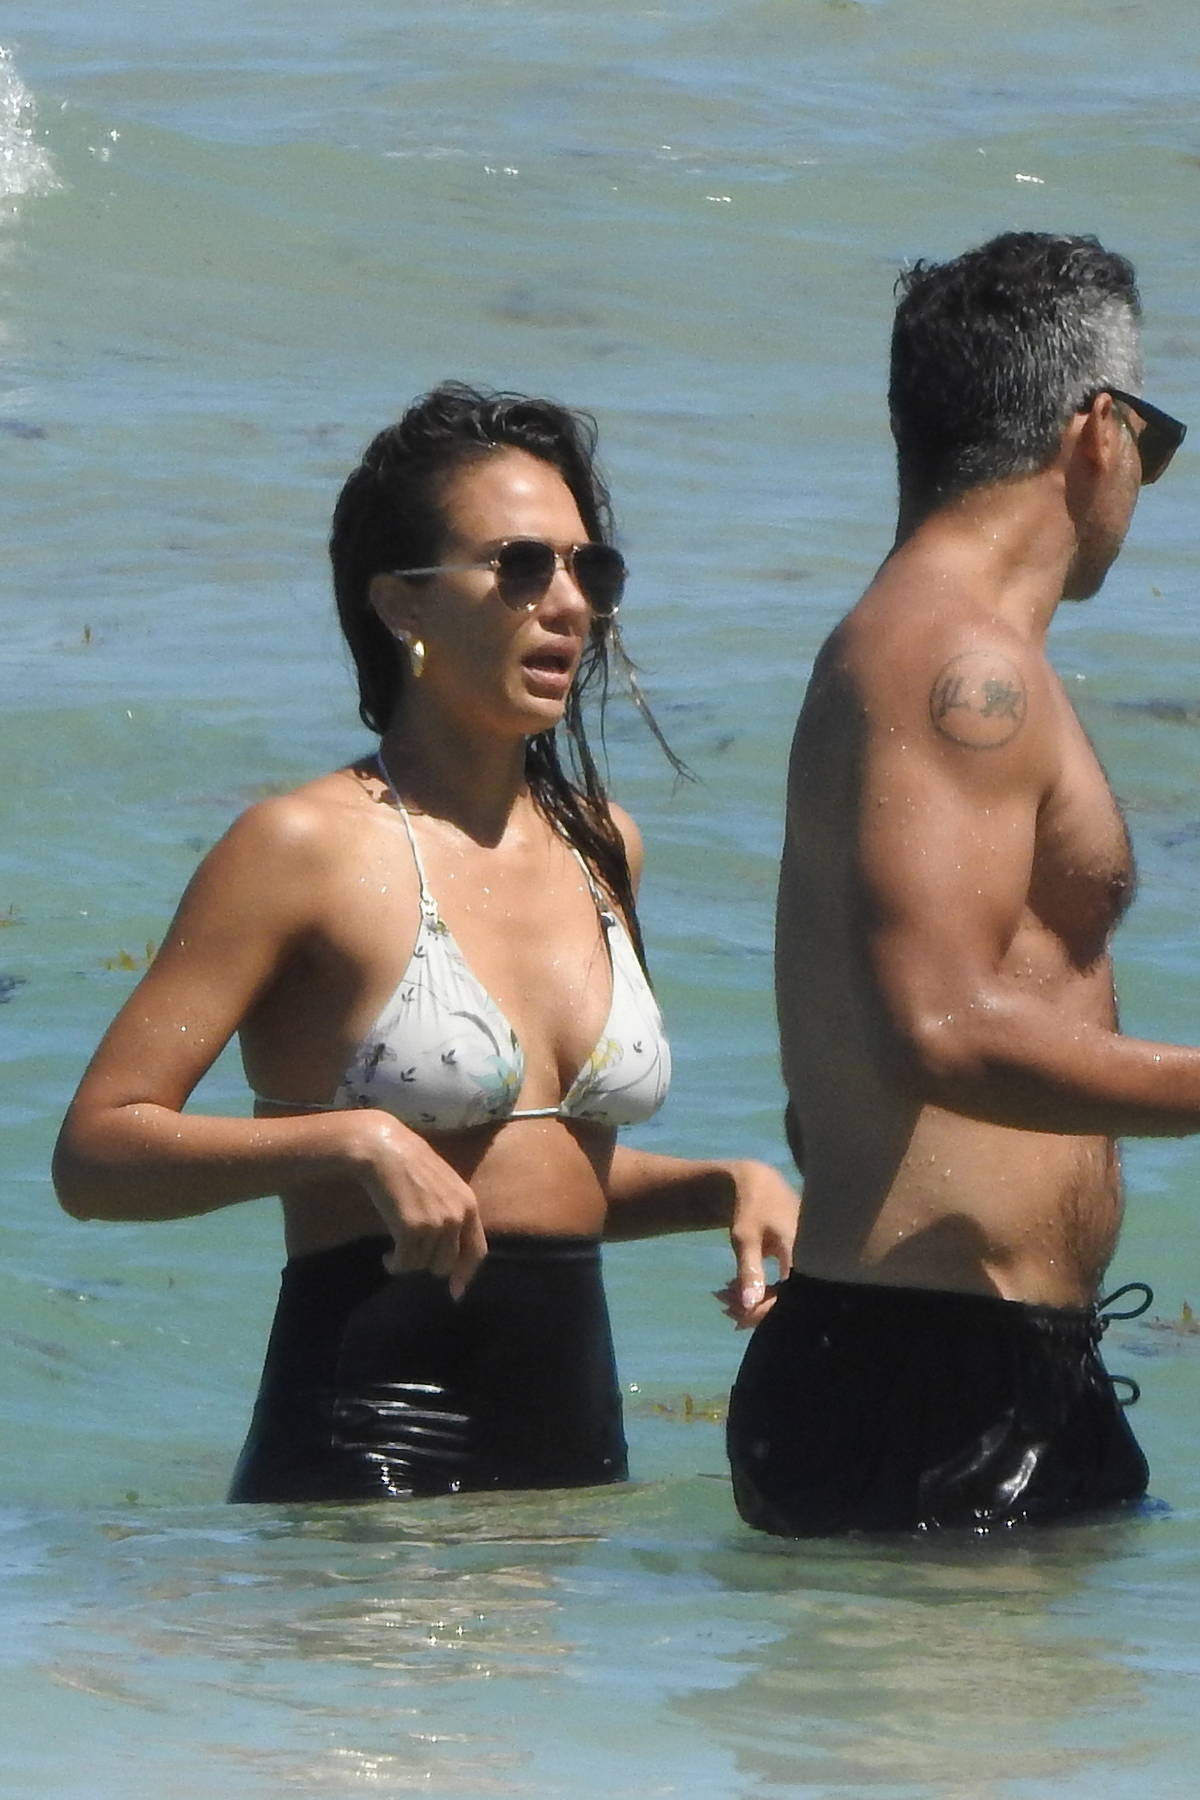 Jessica Alba wears a bikini top and legging shorts as she takes a dip into the ocean in Miami, Florida